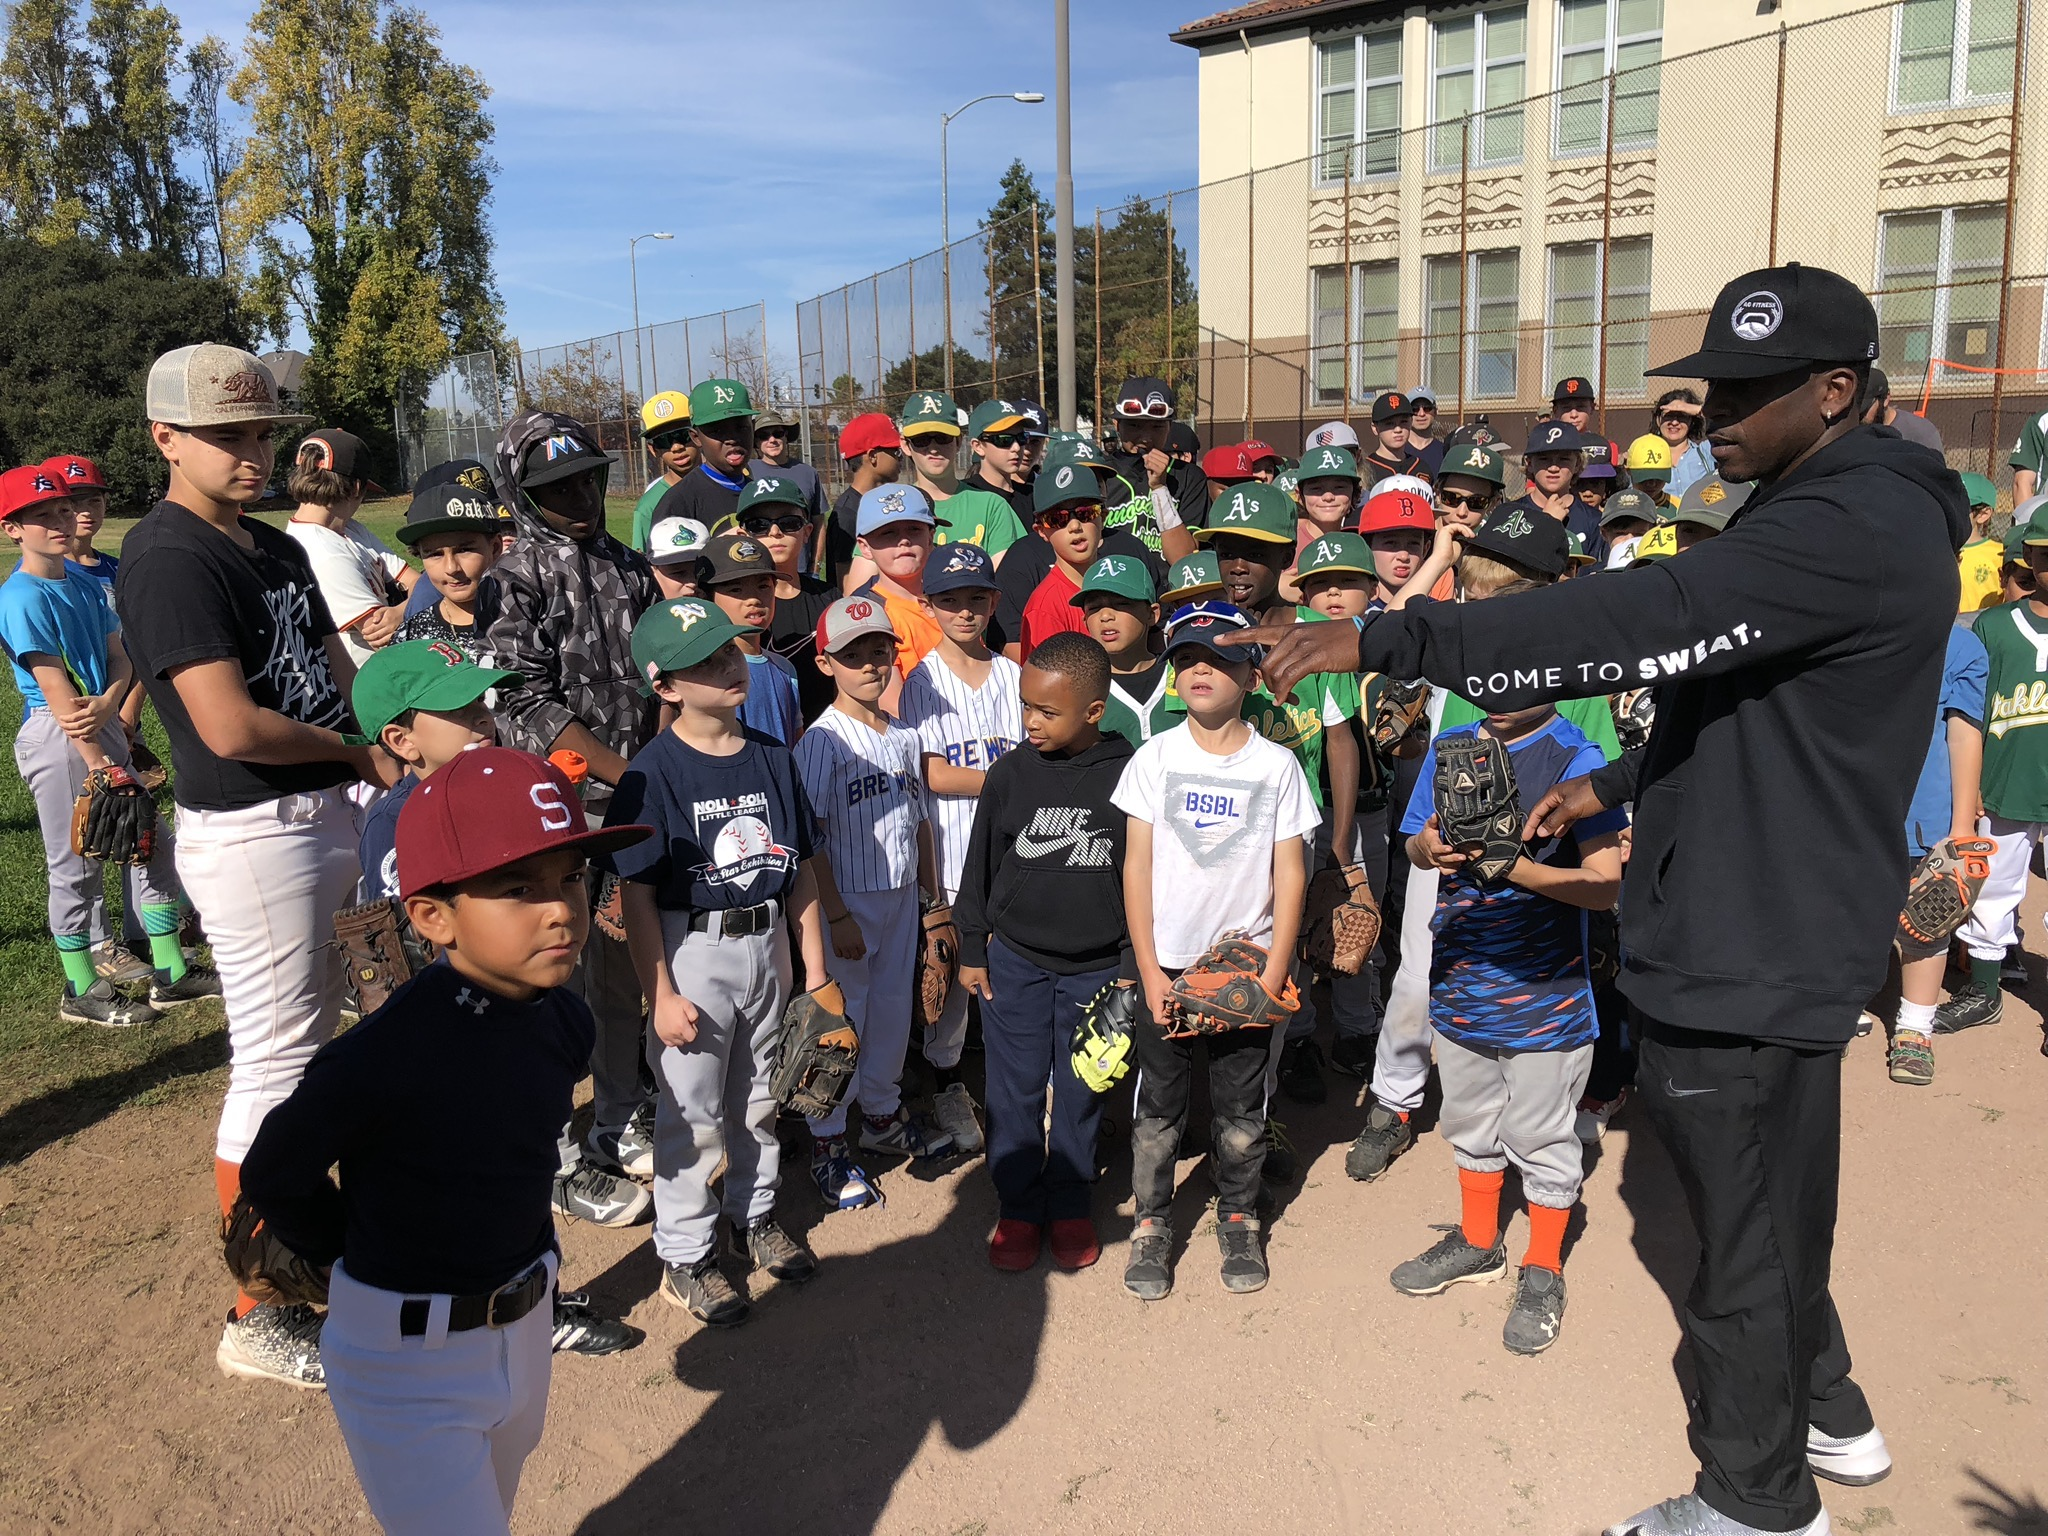 REGISTER NOW! 4th Annual FallBaseball Clinic - On October 26th, join AG Fitness for its fourth-annual fall clinic! Enjoy a day of training and drills led by former MLB player Jemile Weeks.Click here to register. This camp will reach capacity, so be sure to register ASAP!Date: Saturday, October 26, 2019Time: 11:00 am - 12:30 pmWhere: Robert Mason Baseball Field (San Pablo Blvd. @ 62nd St. Emeryville, CA)Ages: No age limit!What to Expect:- Hands-on coaching from former professional baseball players, including Jemile Weeks, with more players to be announced soon!- Professional warm-up routine- Drills for skill (for correct running form)- Agility ladder- Cone drills- Shoulder programs (to strengthen throwing arm)- Tee work- Soft toss- Live BP- Hitting evaluation- Ground balls- Glove work- Goodie bags (distributed post-clinic)- TONS ON FUN!!!What to Bring:- Workout attire- Cleats- Baseball glove- Batting gloves- Baseball bat- Water